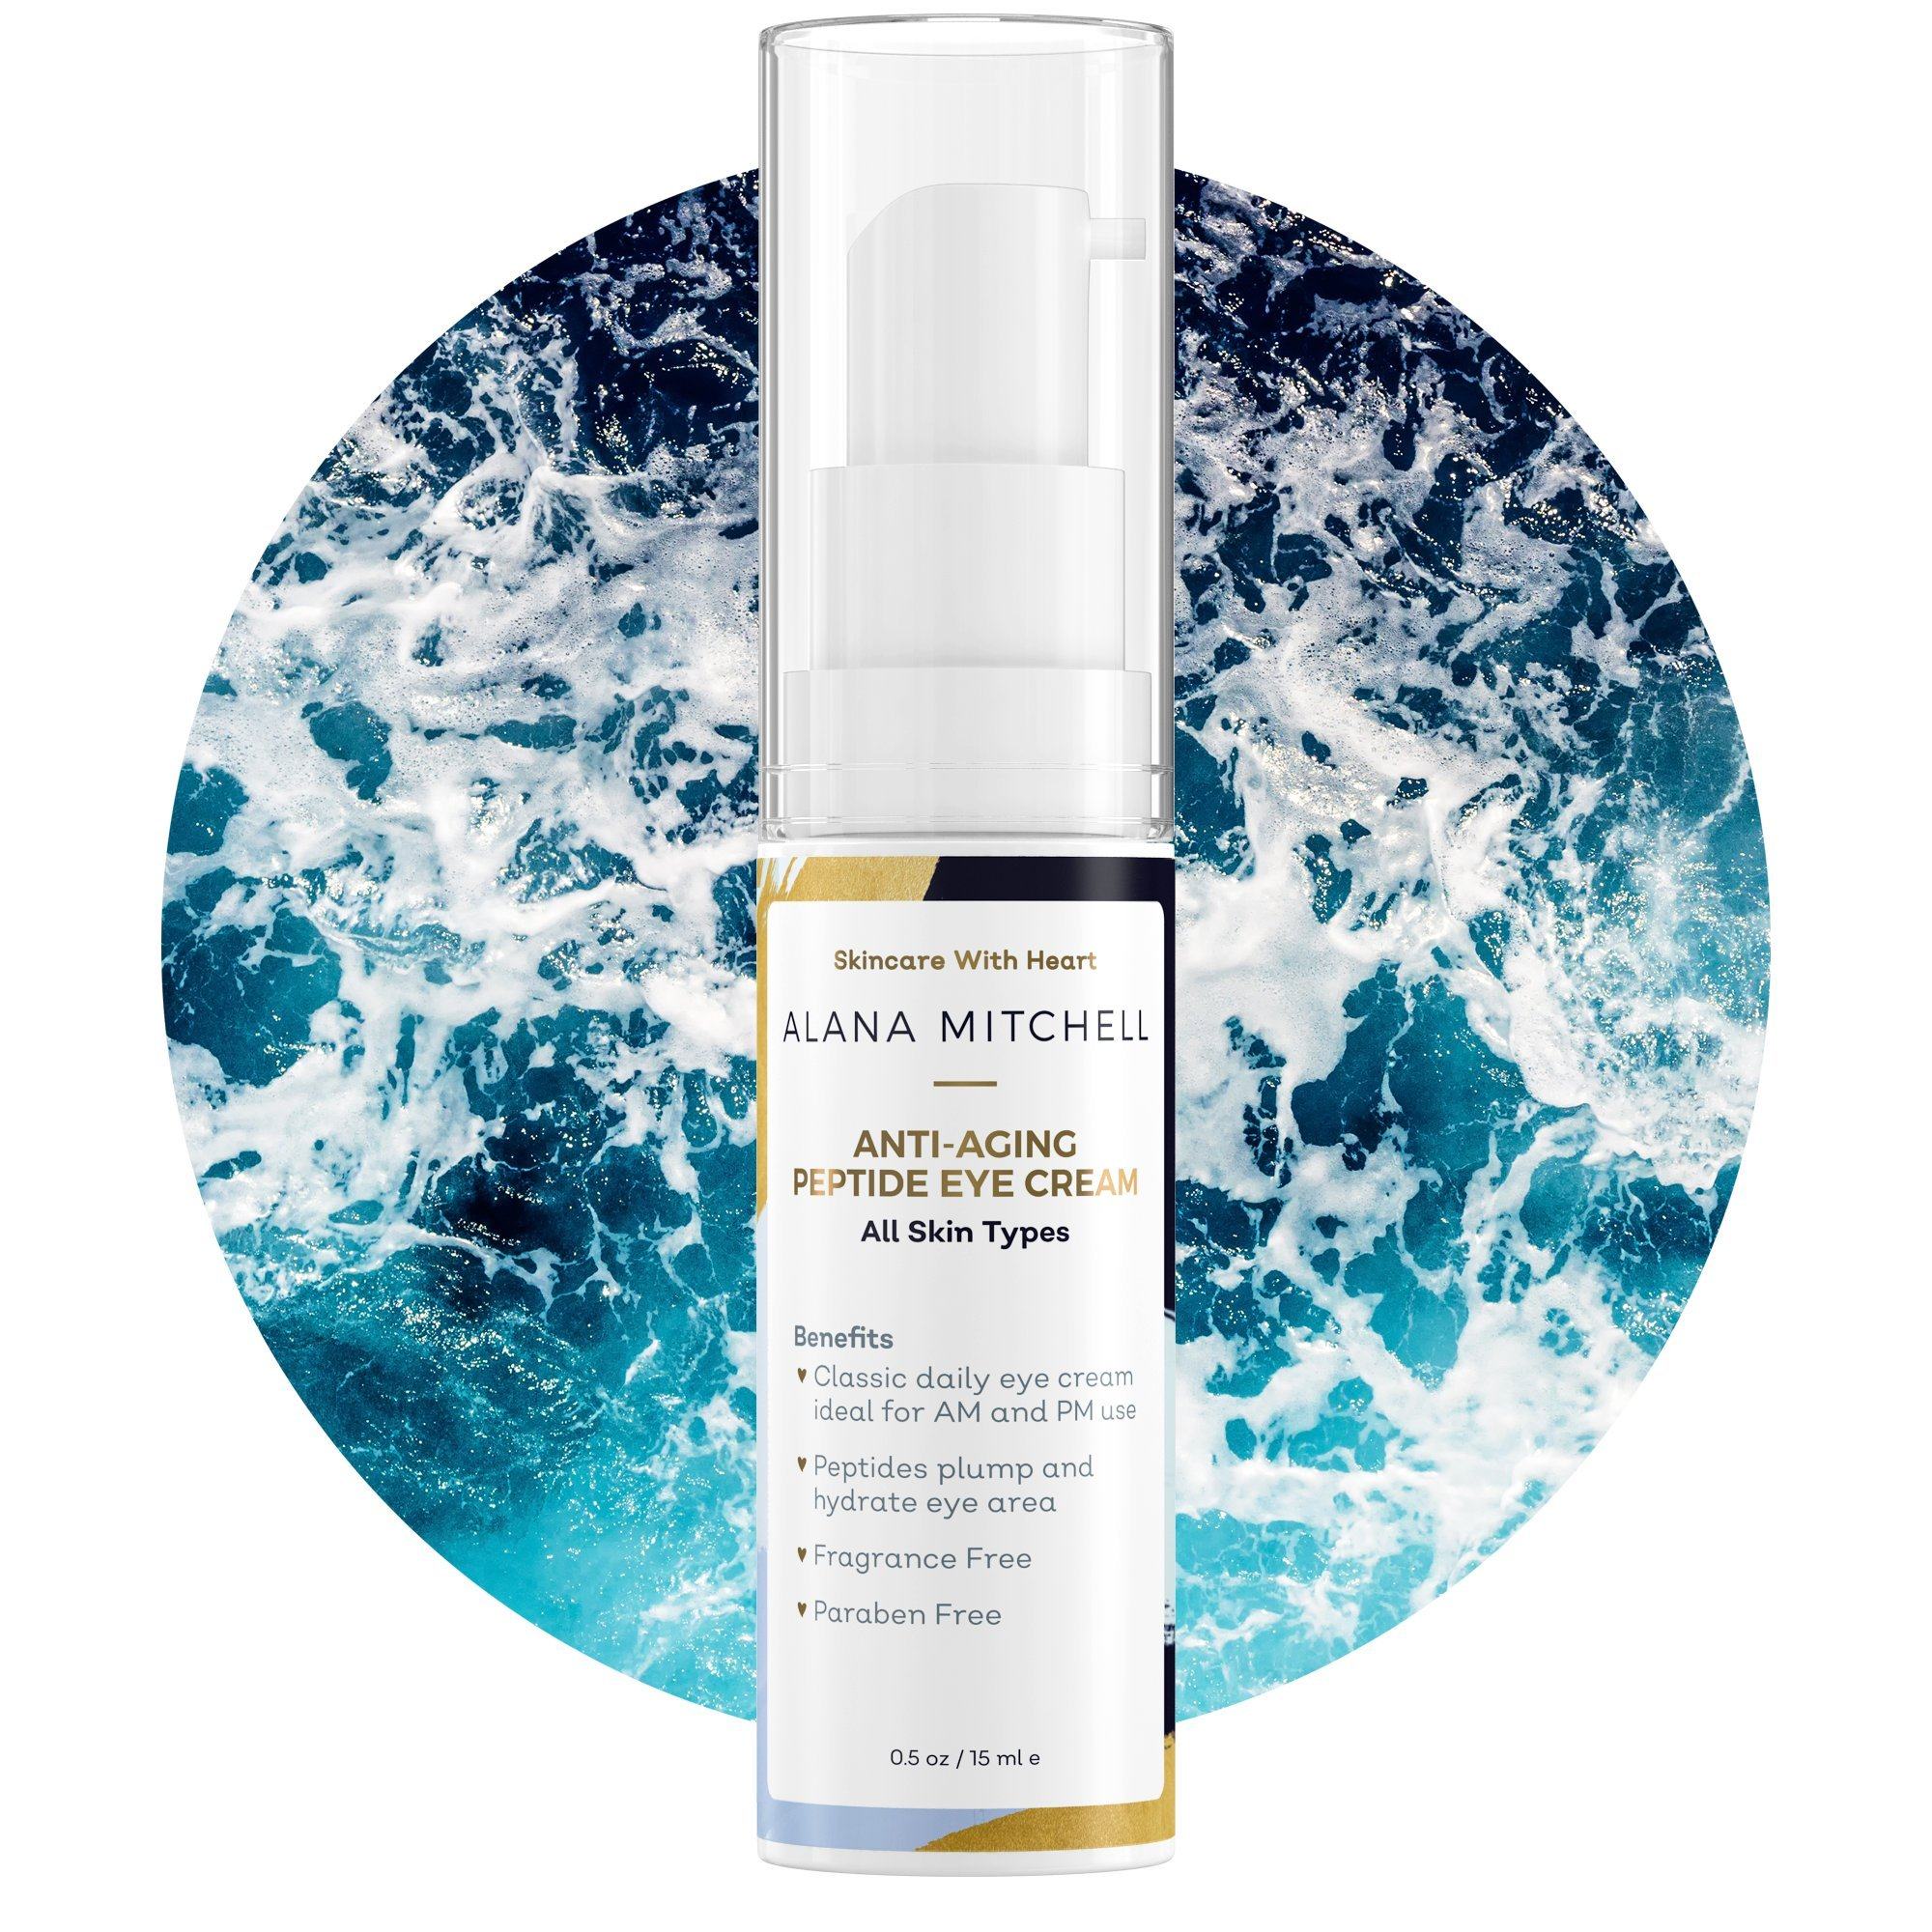 Anti-Aging Firming Peptide Eye Cream By Alana Mitchell - Look Younger, Reduce Wrinkles, Diminish Fine Lines & Erase Crow's Feet - Deep Hydration & Nourishing - For Day & Night Use - Non Greasy .5oz